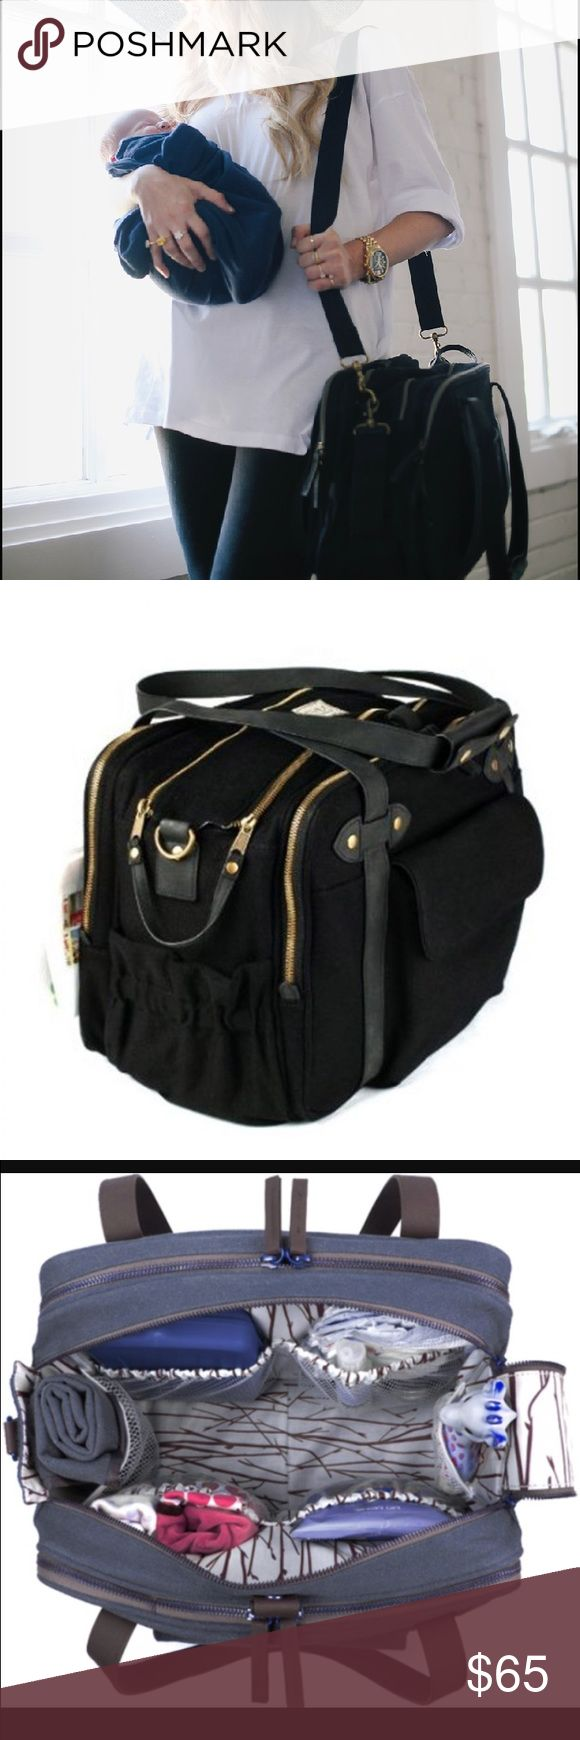 So young Charlie Diaper Bag Black chic diaper bag with plenty of compartments and pockets to keep you organized! Features a large insulated front pocket perfect for bottles and snacks. Roomy inside for all the essential baby needs. Comes with diaper changing pad as well. Excellent condition. ||price is firm on this item, will consider an offer of bundled|| so young Bags Baby Bags